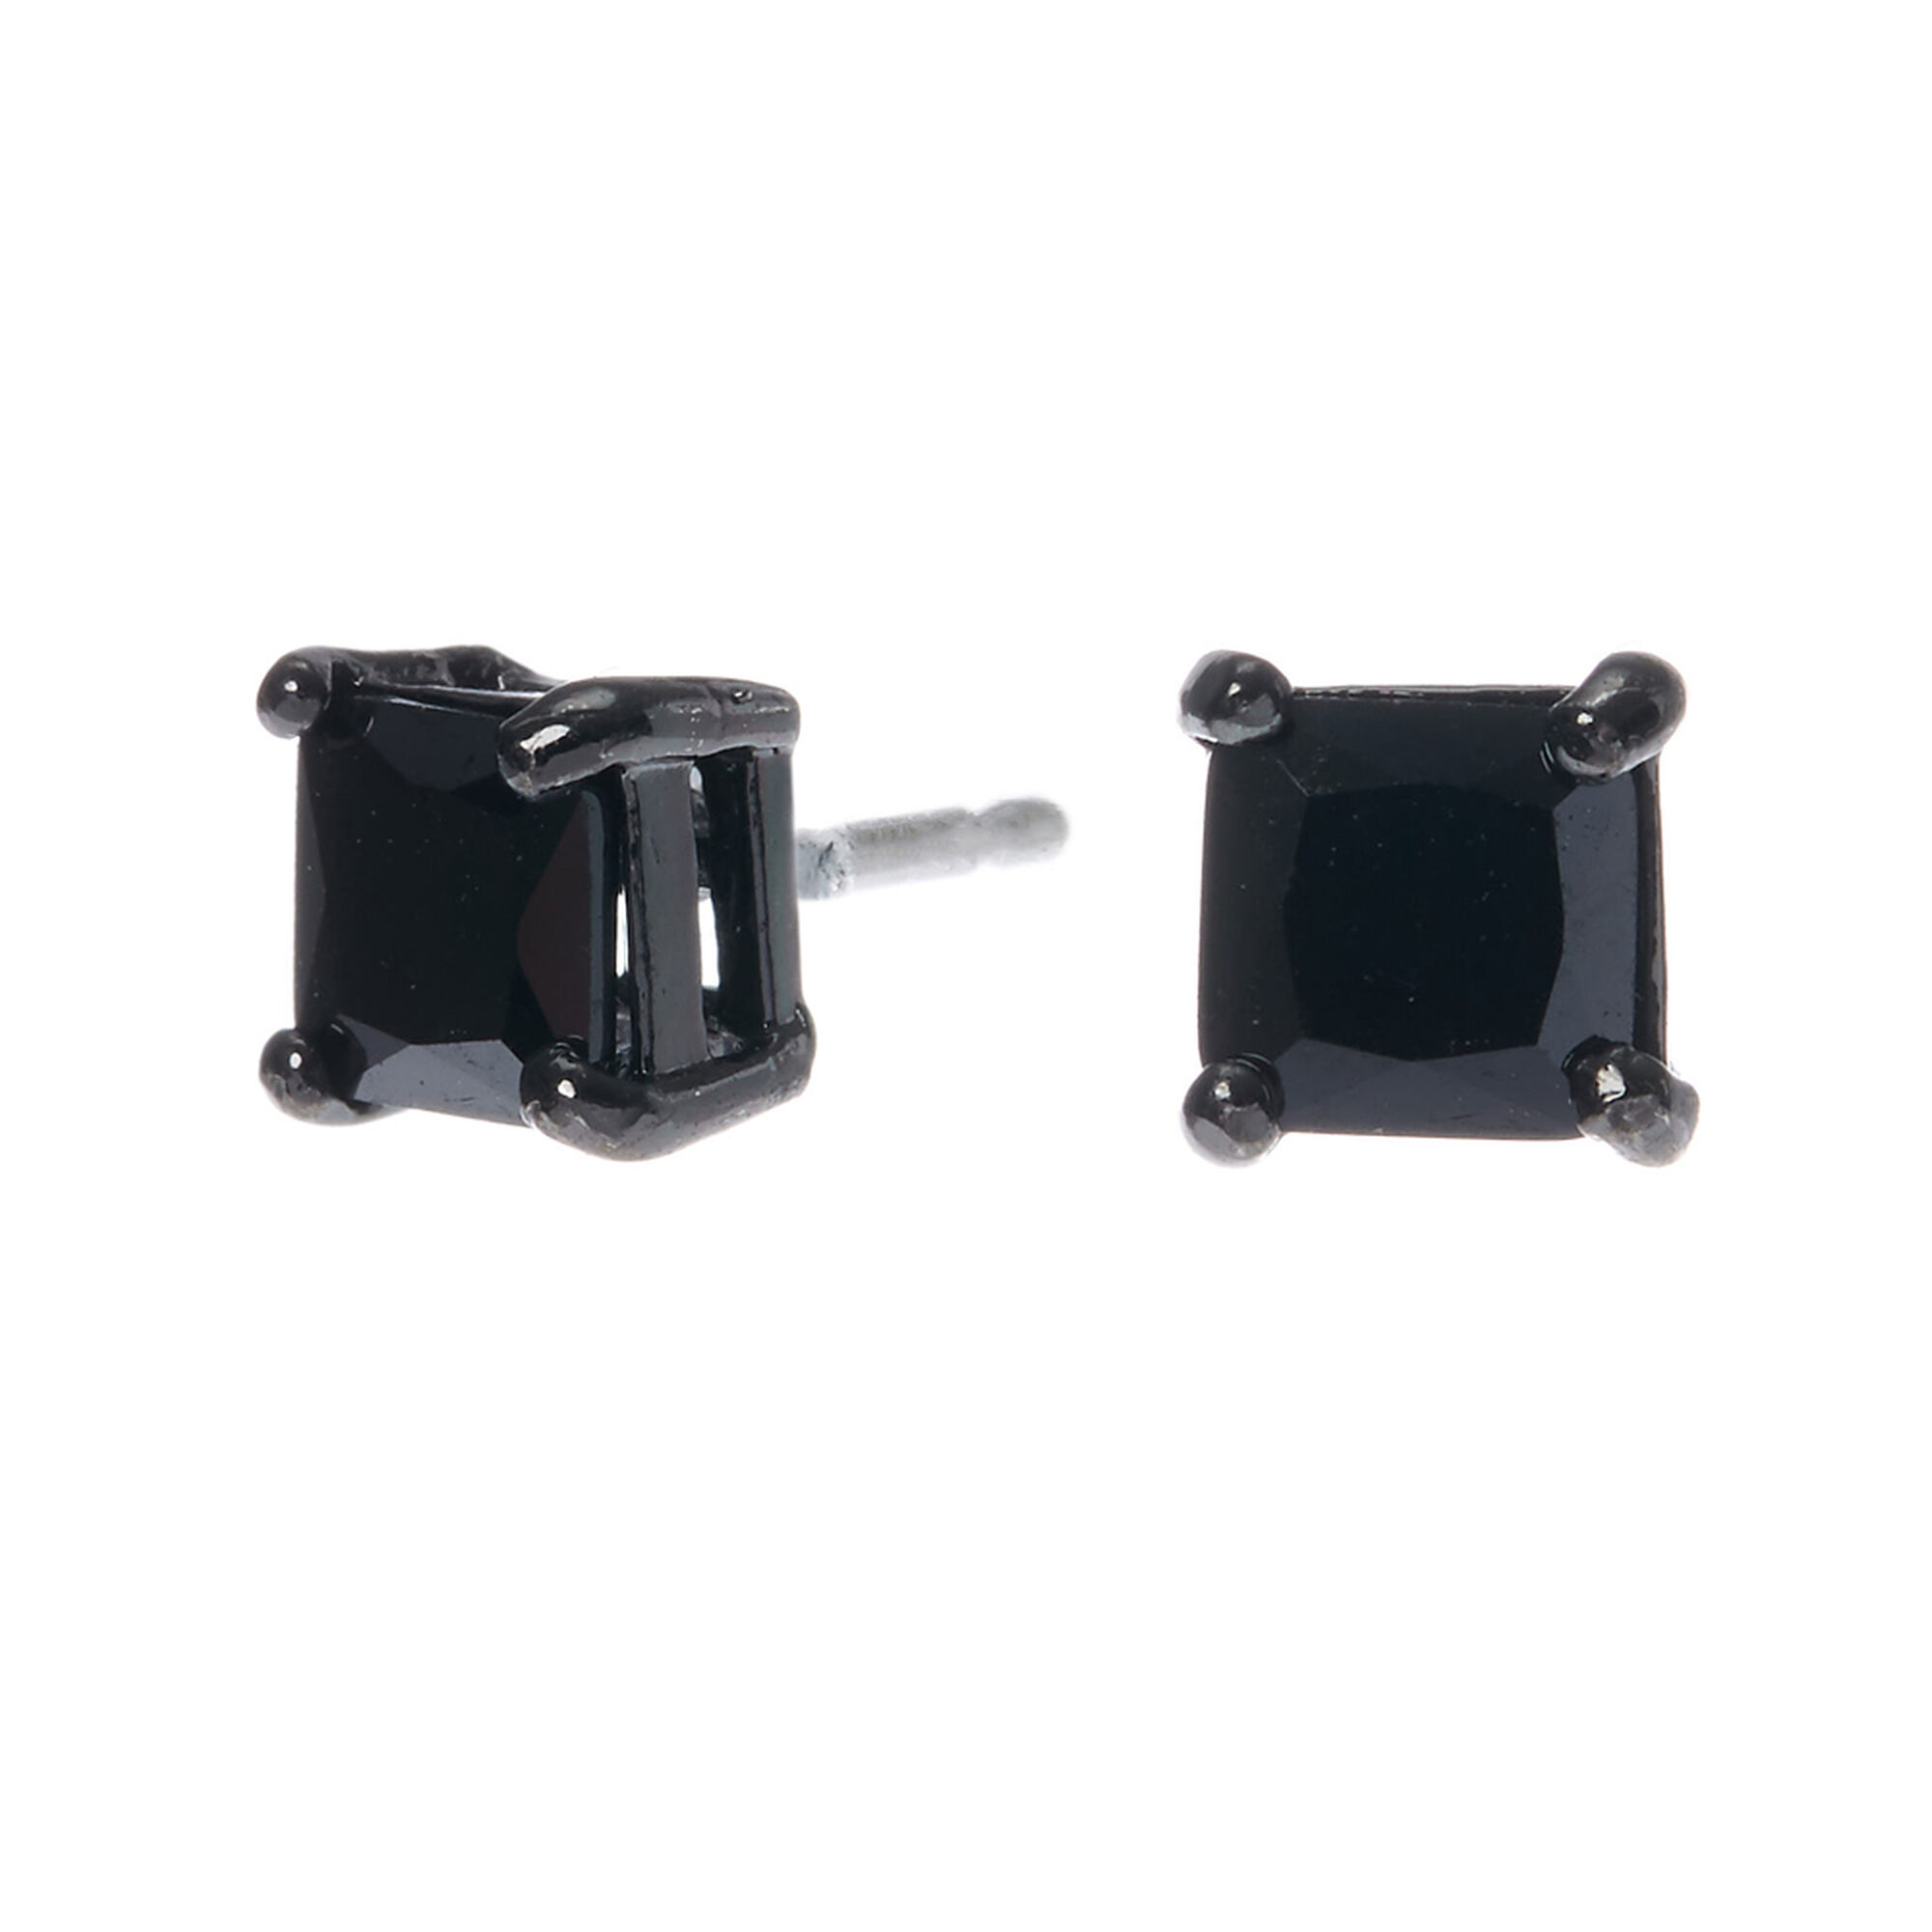 Hematite Cubic Zirconia Square Stud Earrings - Black, 5MM